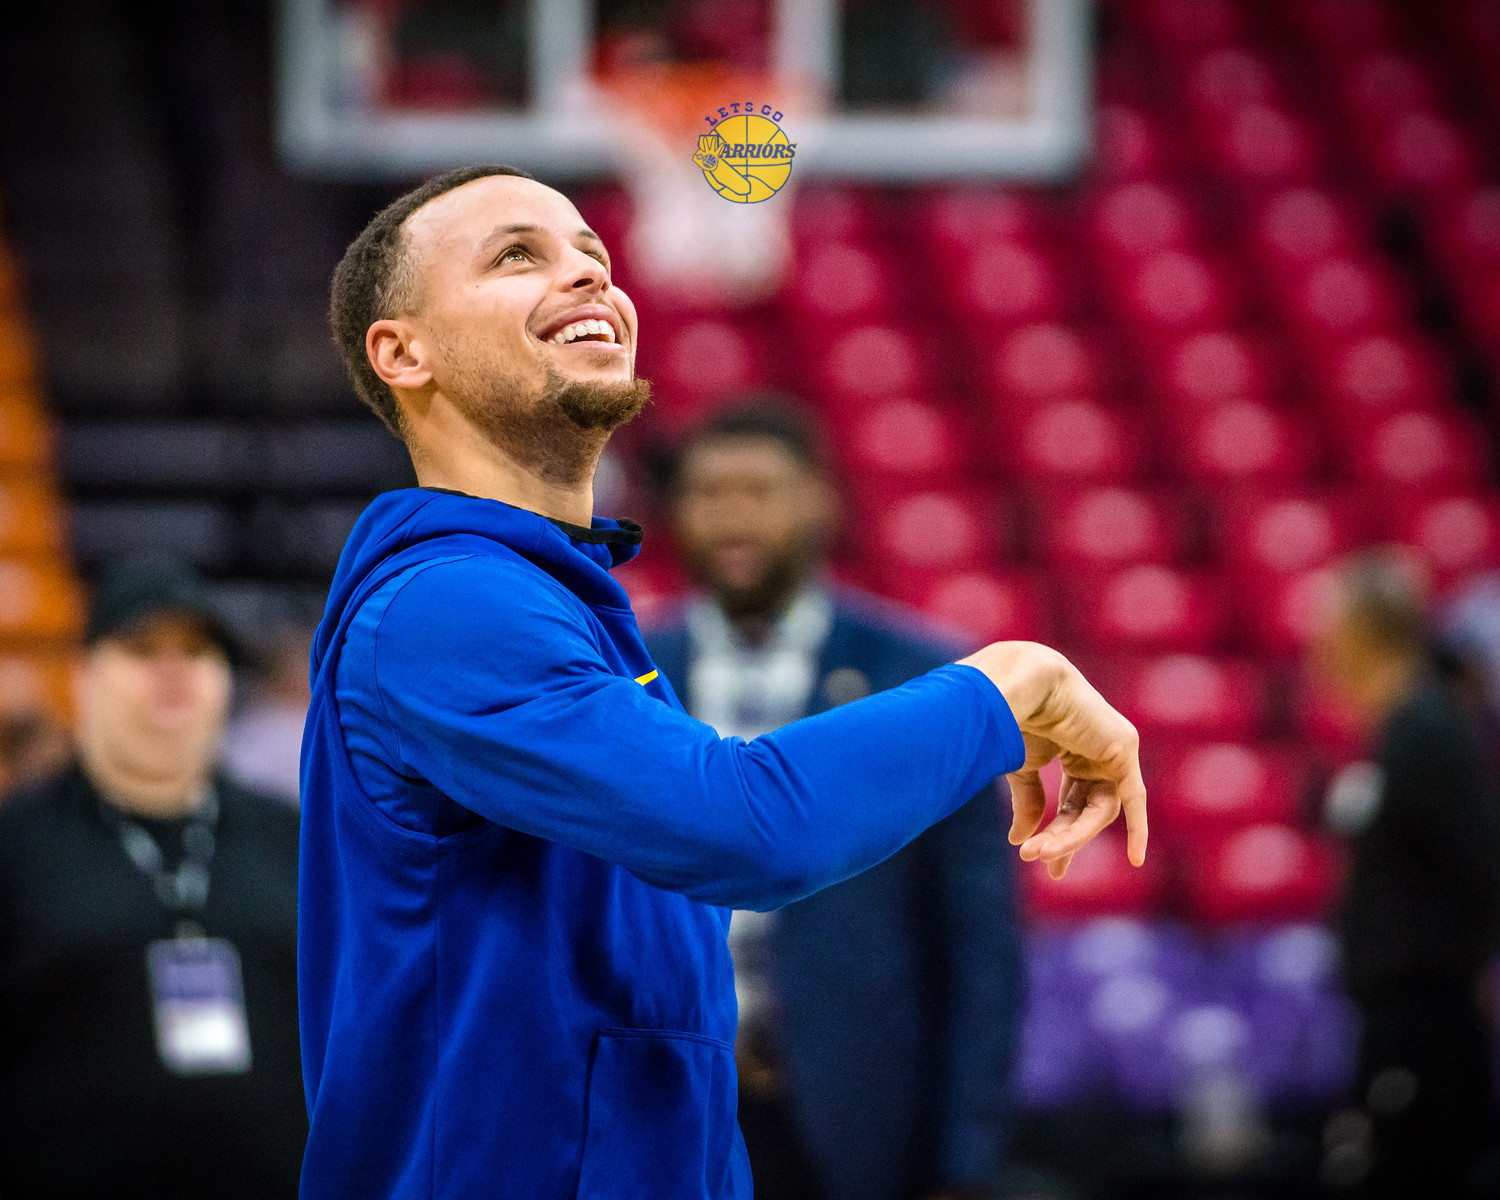 [PHOTO GALLERY] Steph Curry, Klay, Durant pregame in Sacramento before Warriors vs Kings